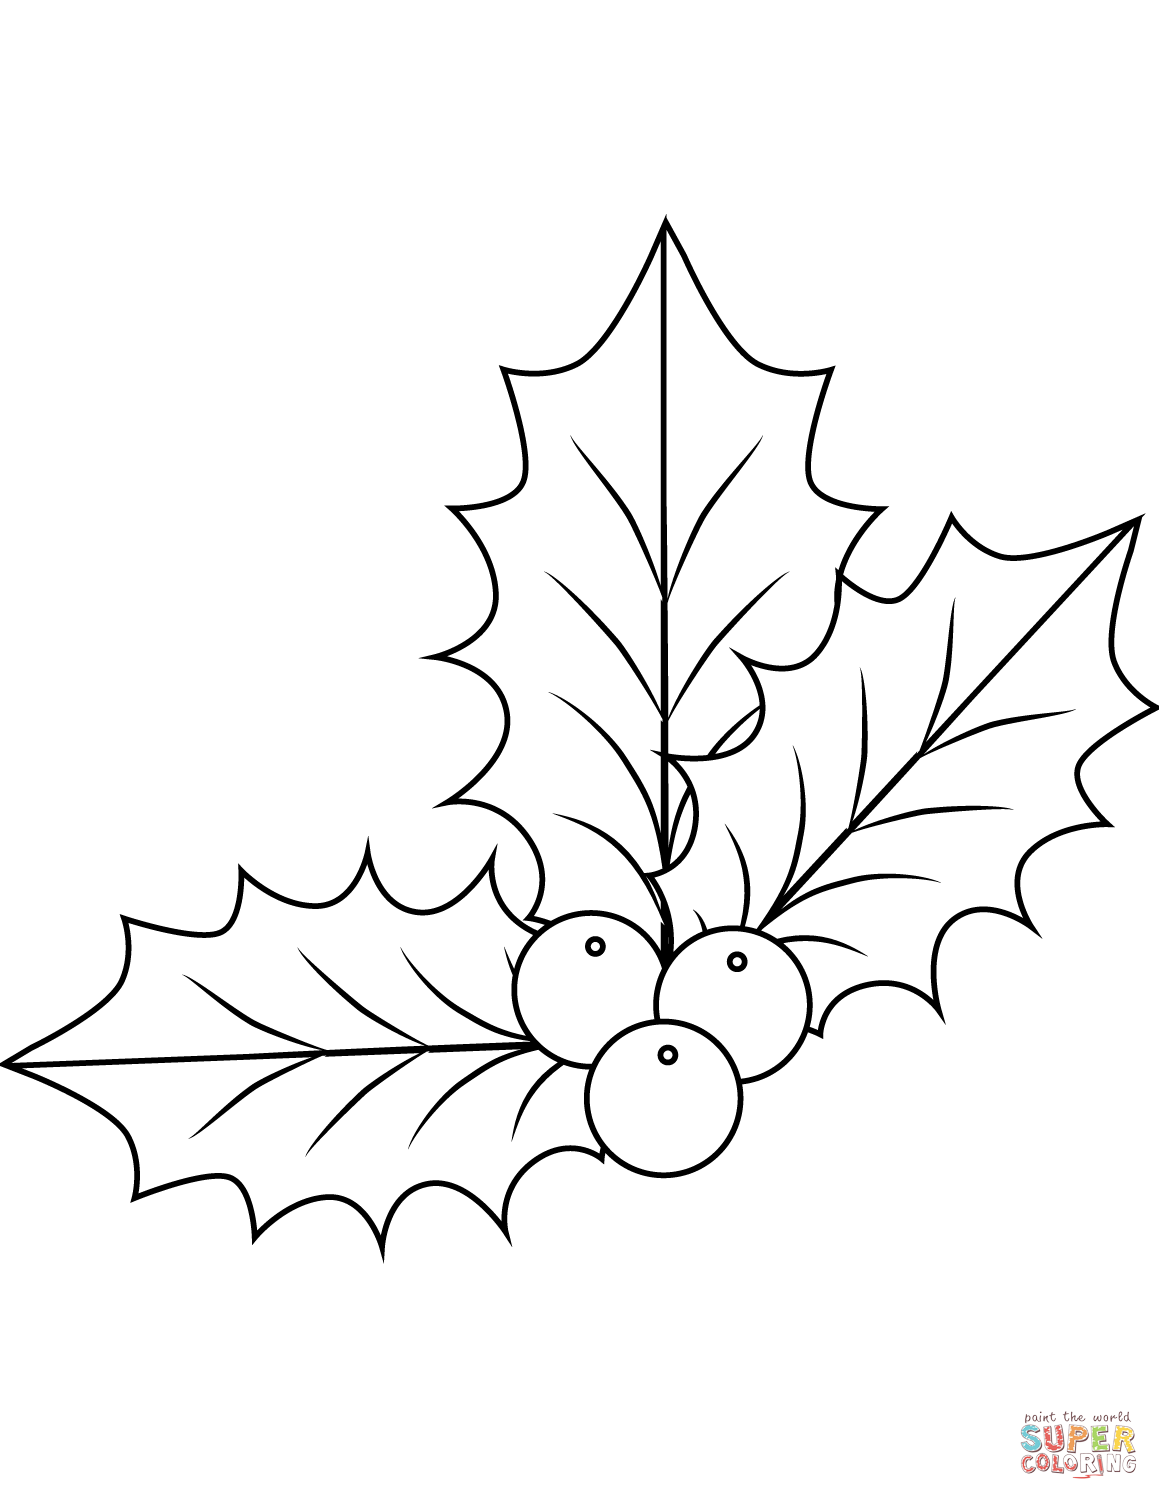 Xmas Holly Coloring Page Free Printable Coloring Pages